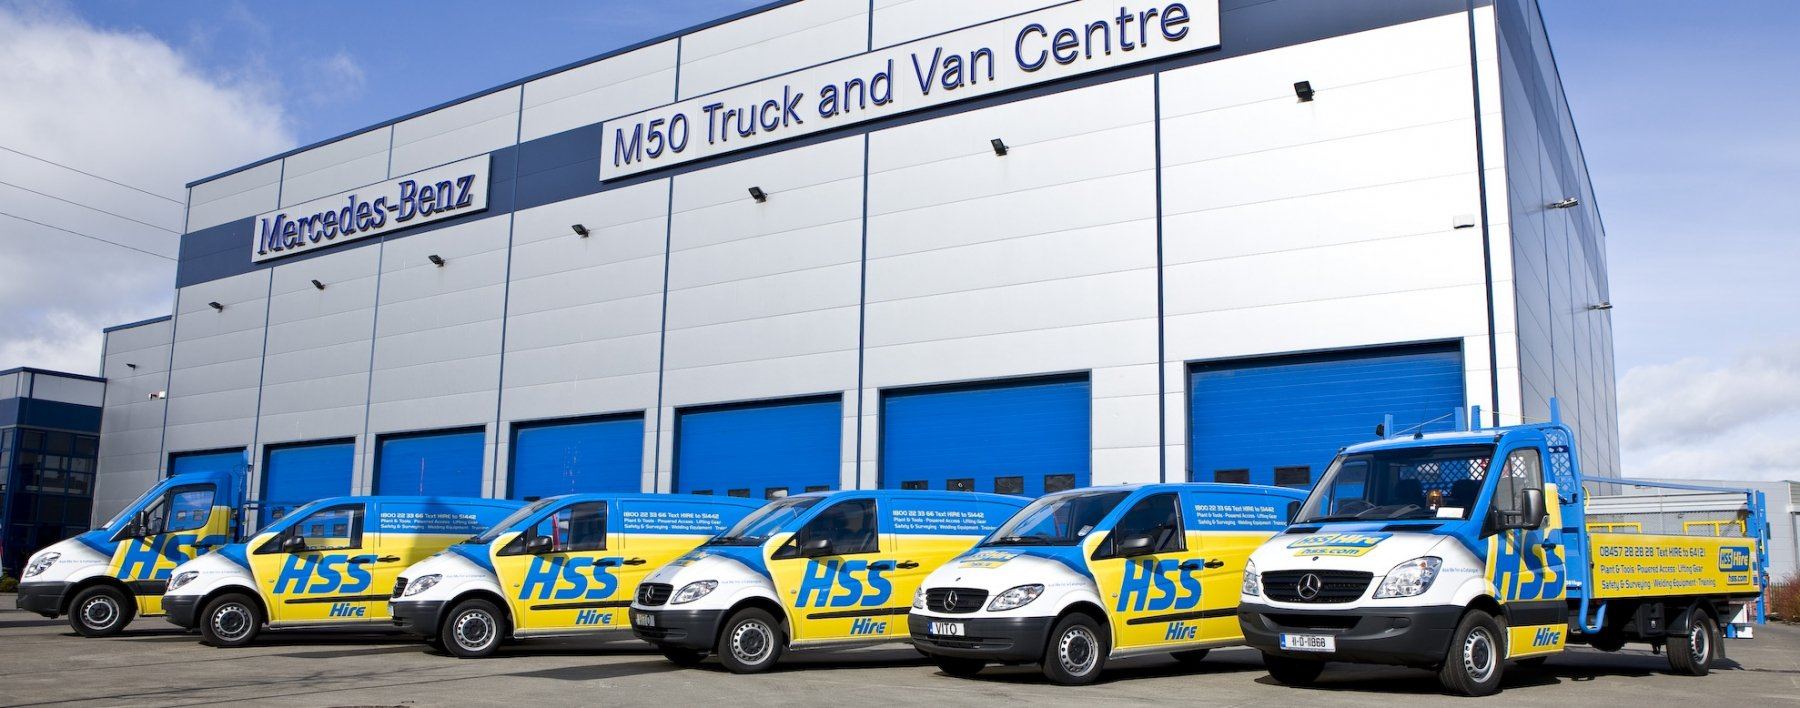 HSS Hire vehicle livery by Ast Transport Branding